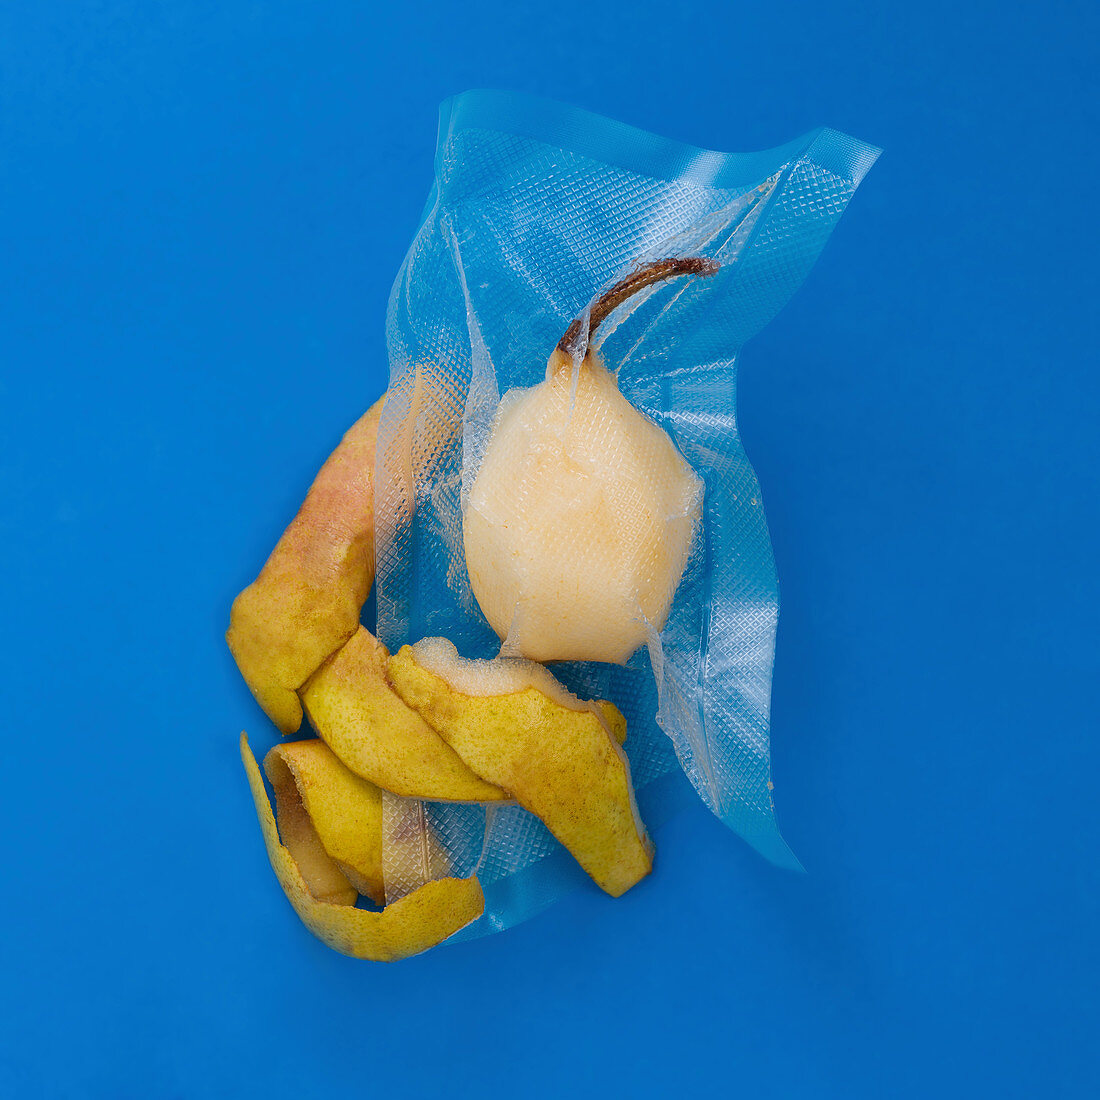 A peeled pear vacuum-packed in a plastic bag